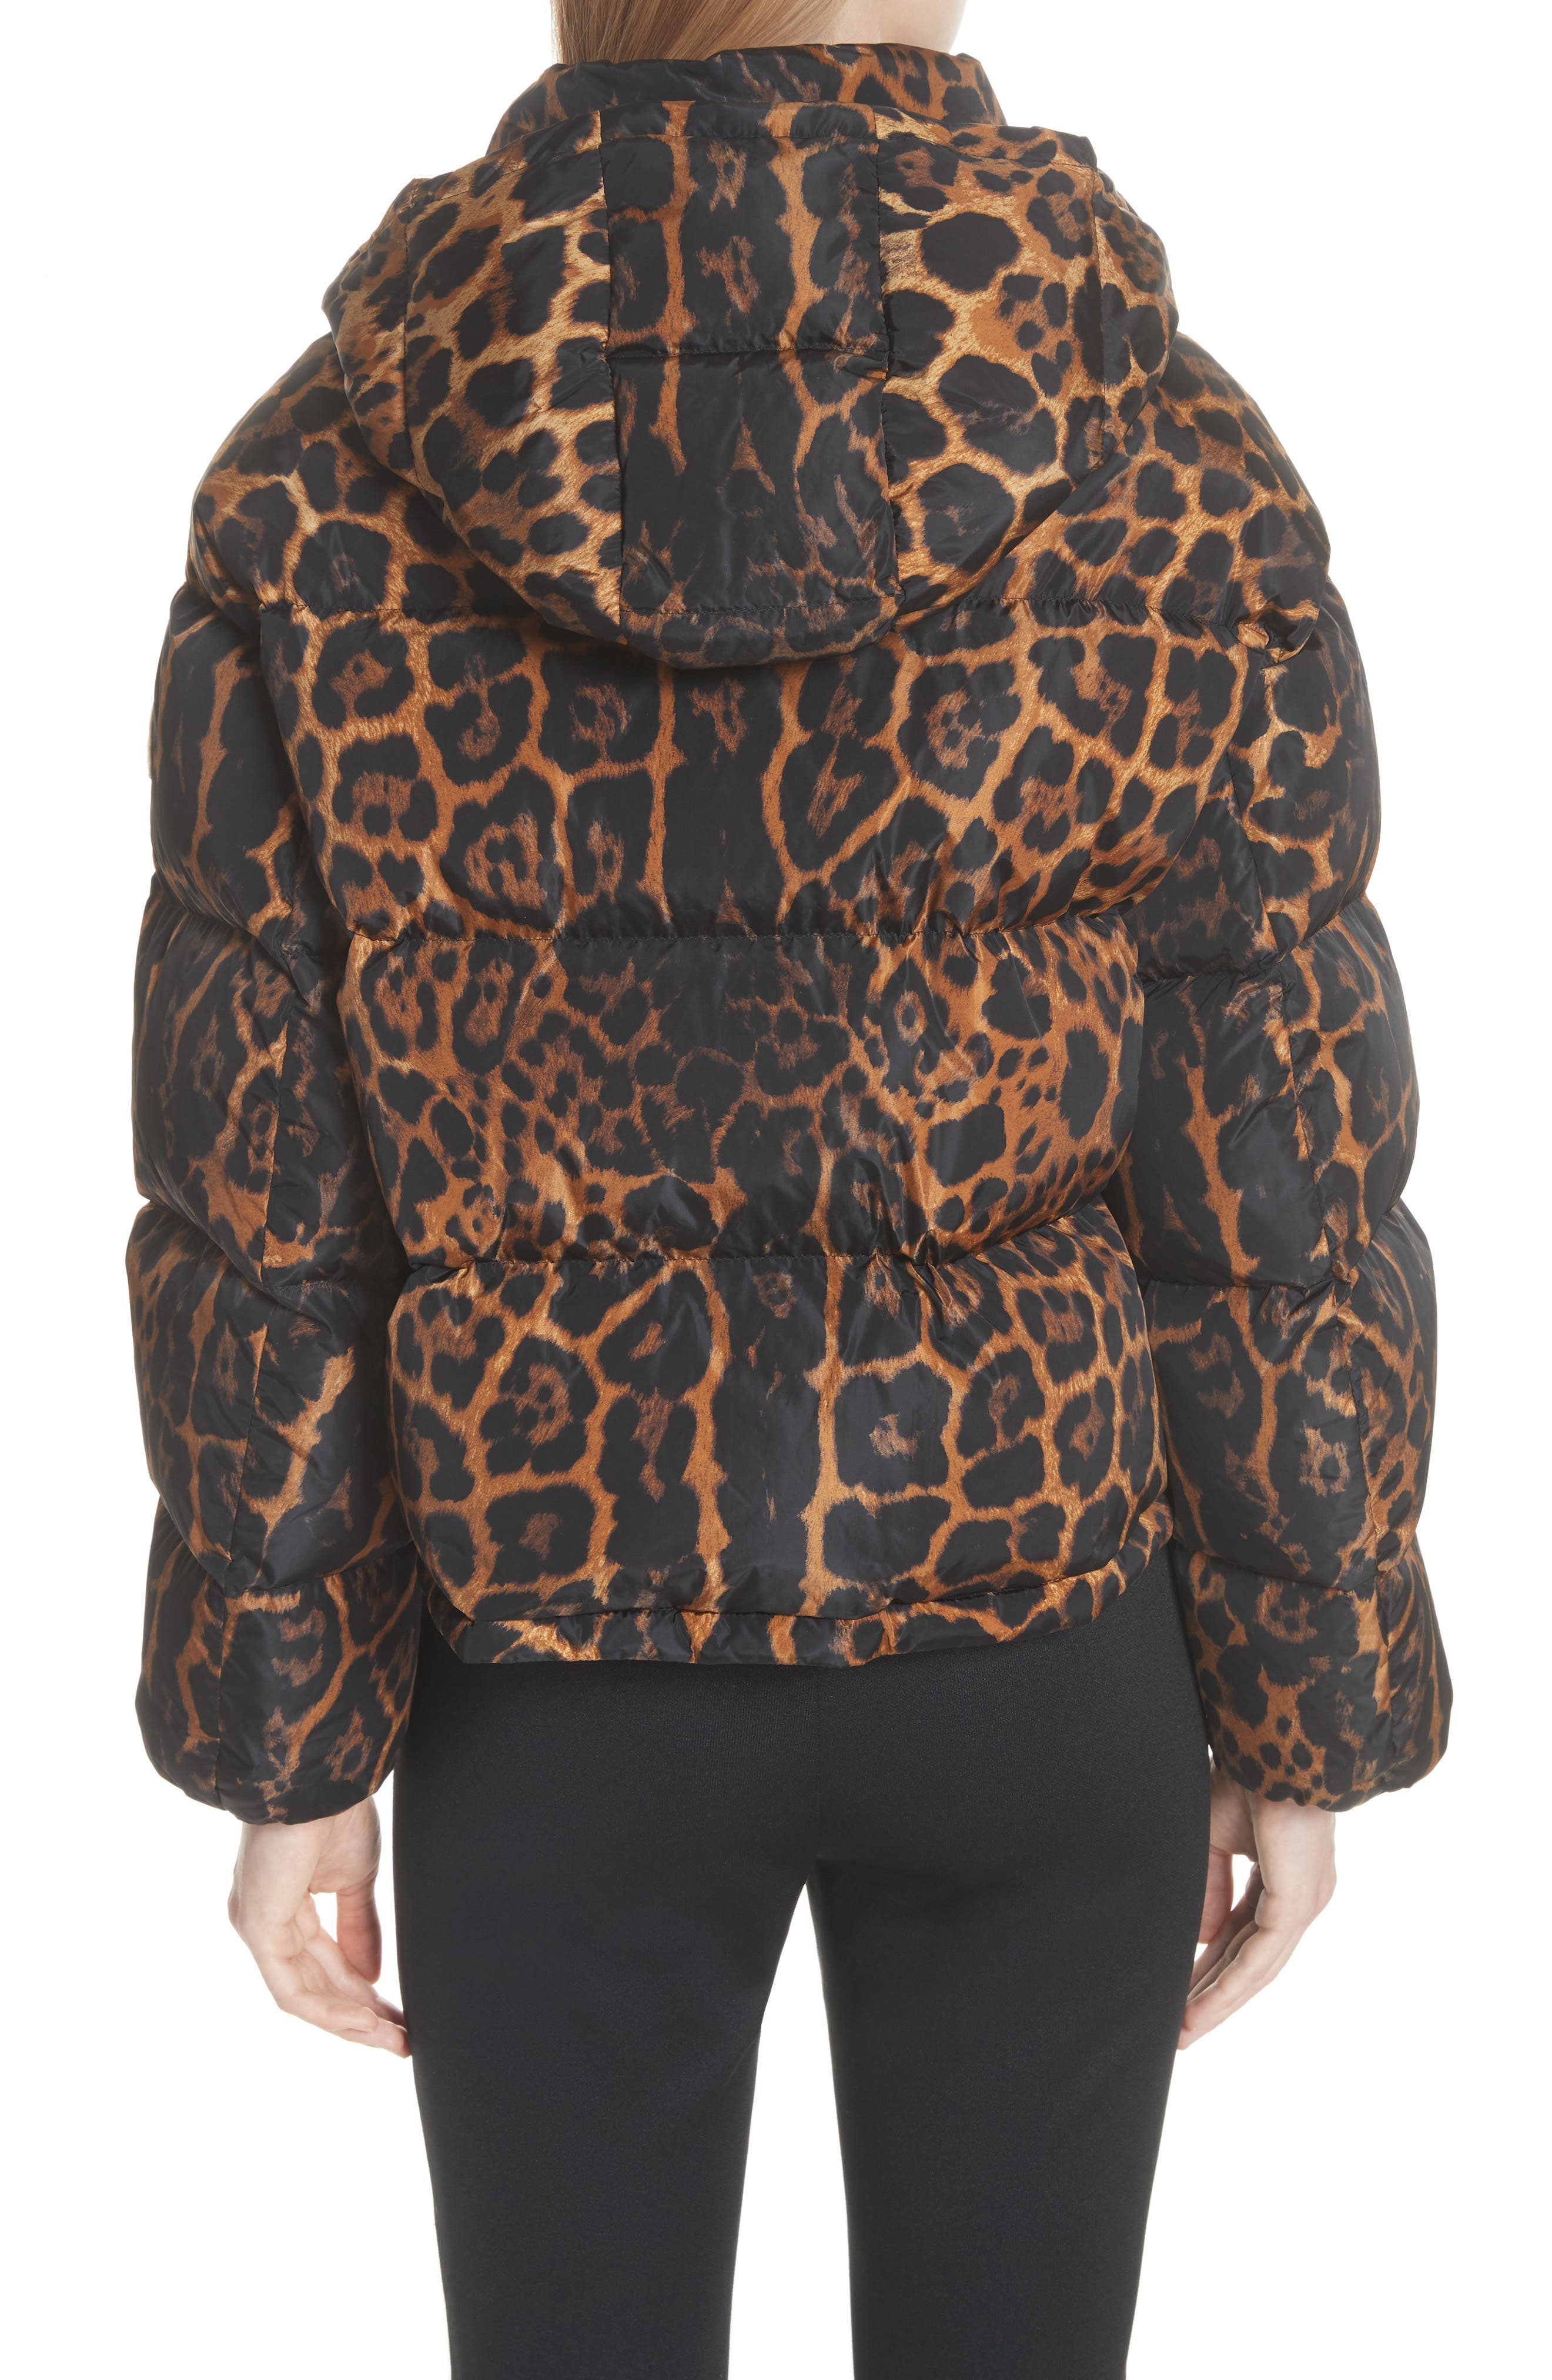 MONCLER, Caille Leopard Print Down Puffer Jacket, Alternate thumbnail 3, color, 240